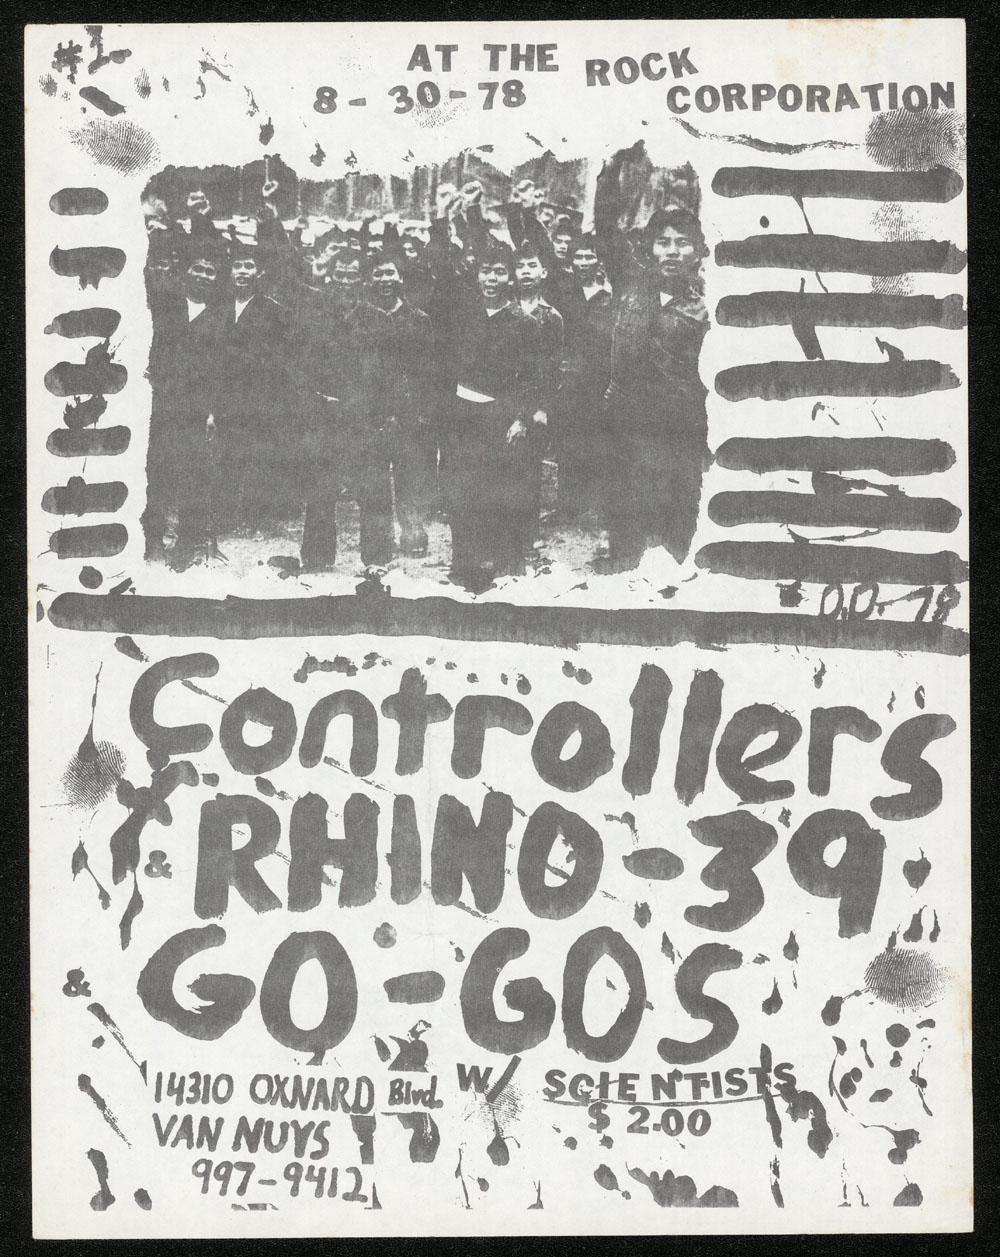 CONTROLLERS w/ Rhino 39, Go-Go's, Scientists at Rock Corporation